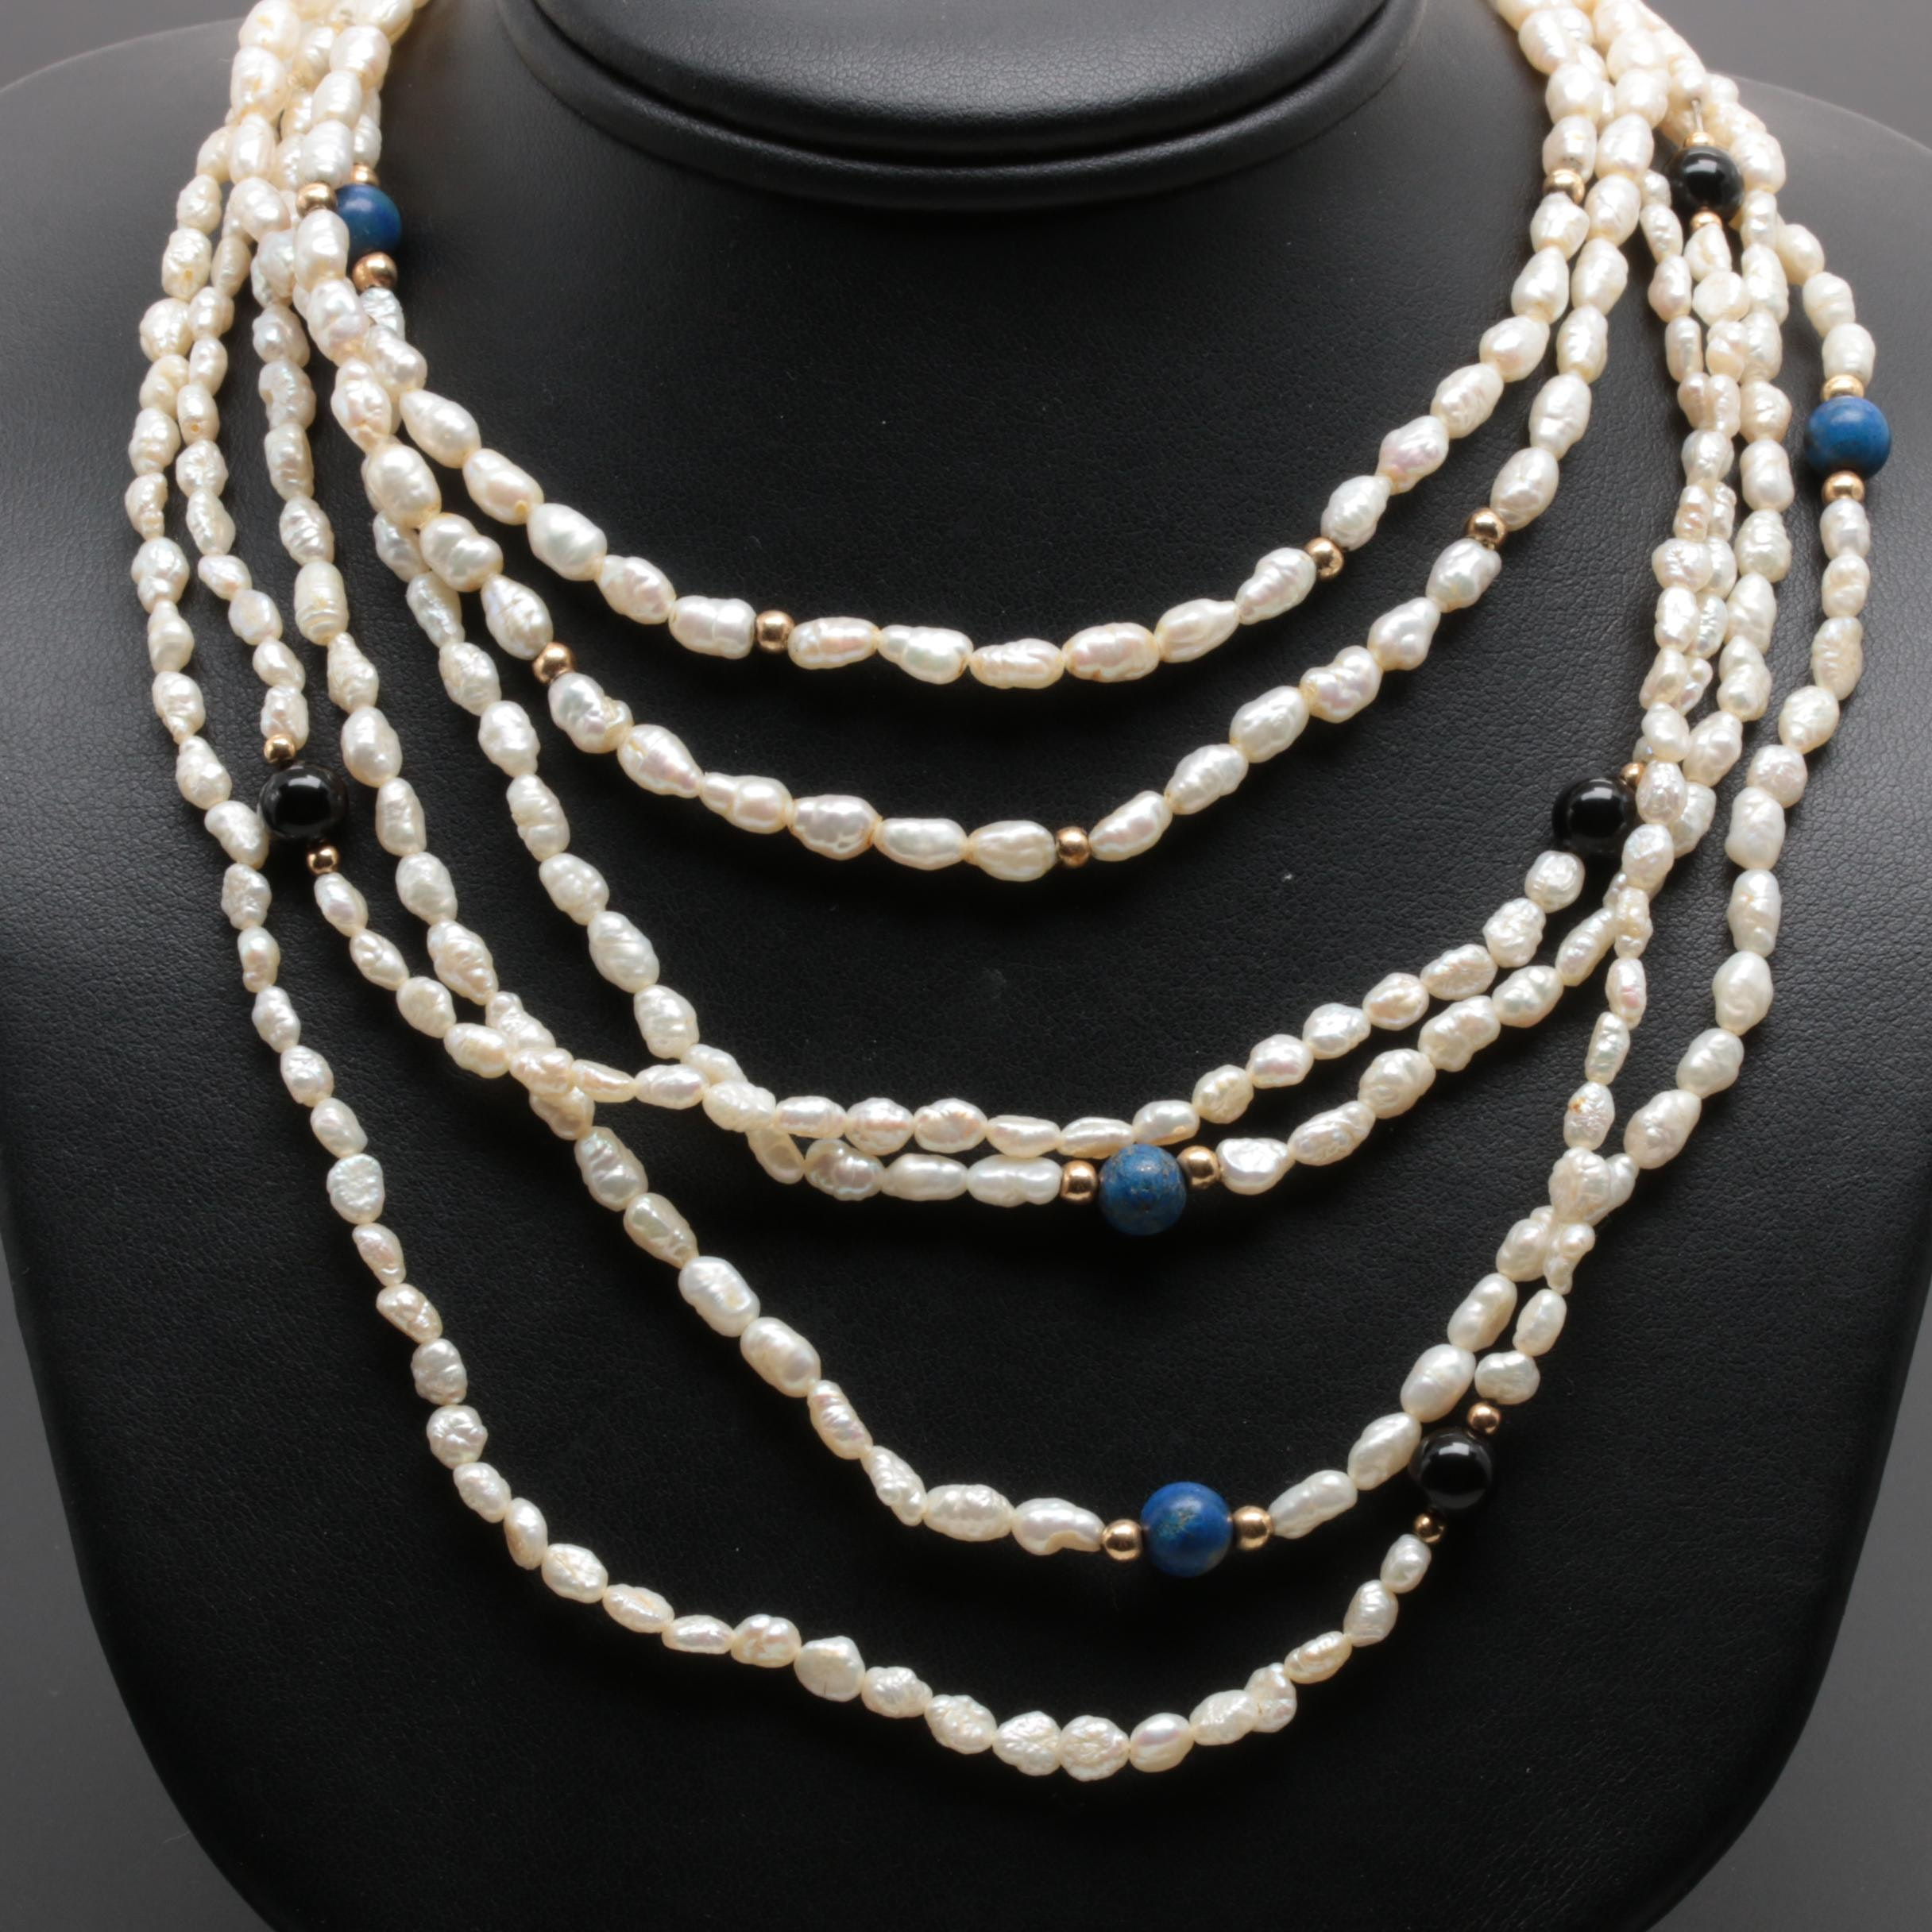 14K Yellow Gold Lapis Lazuli, Black Onyx, and Cultured Pearl Necklaces